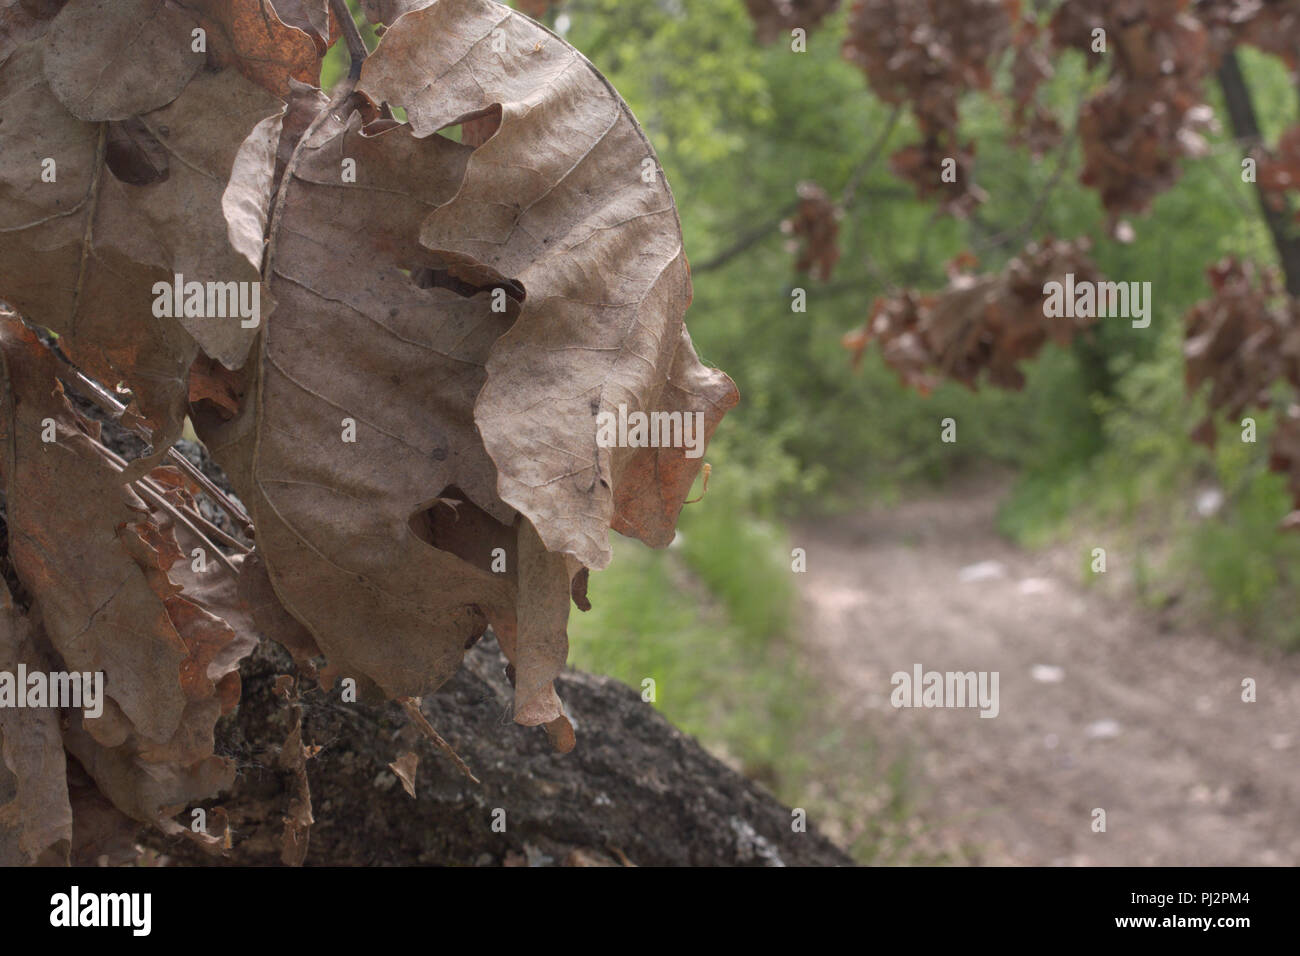 Oak leaves, large, withered, in lush bunch. closeup. dirt road under dry tree of a dense forest Stock Photo